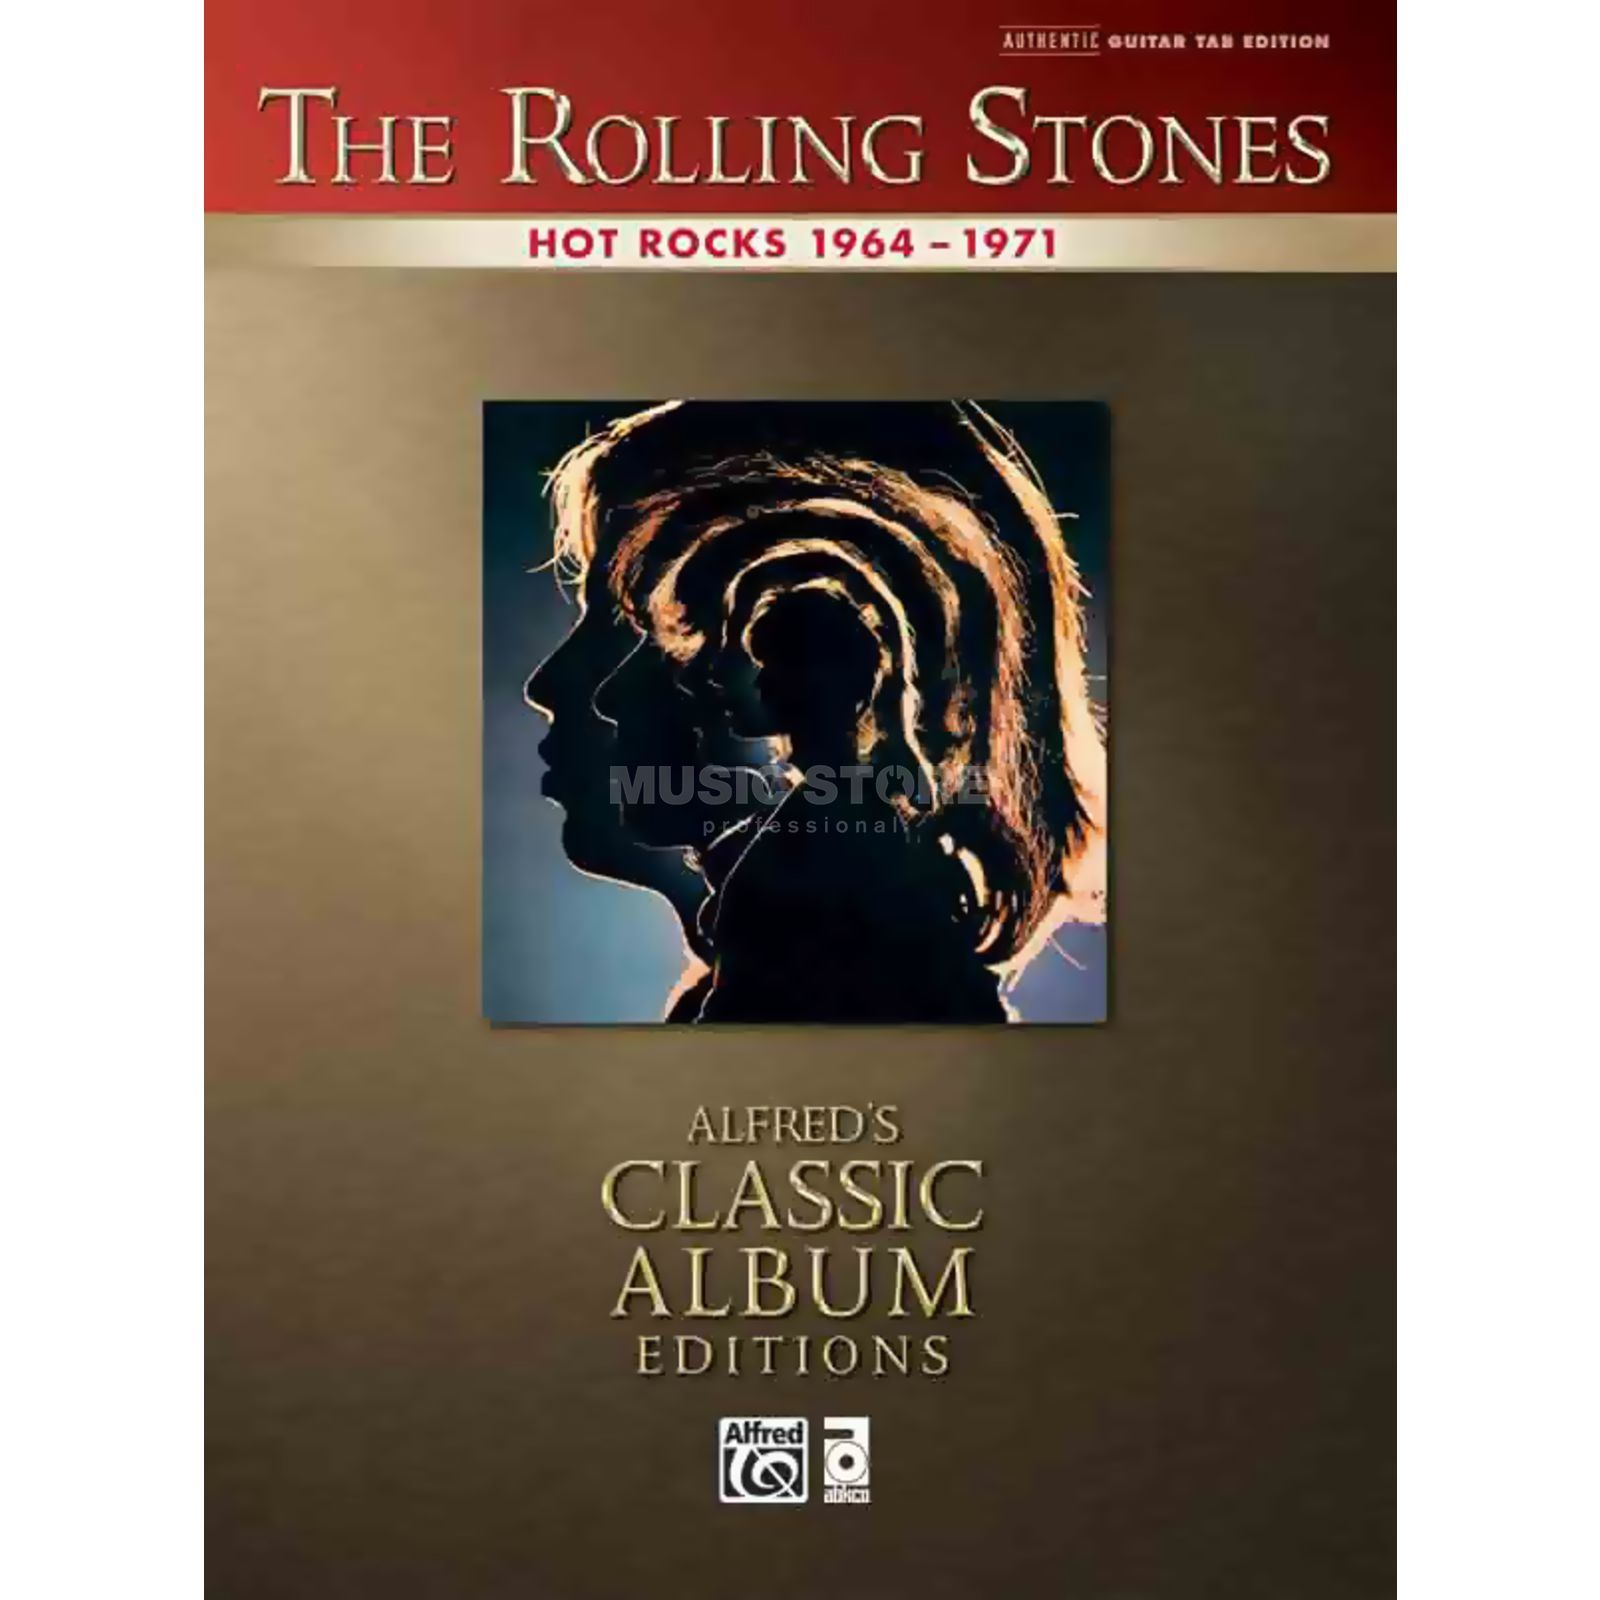 Alfred Music The Rolling Stones: Hot Rocks 1964-1971 Produktbild